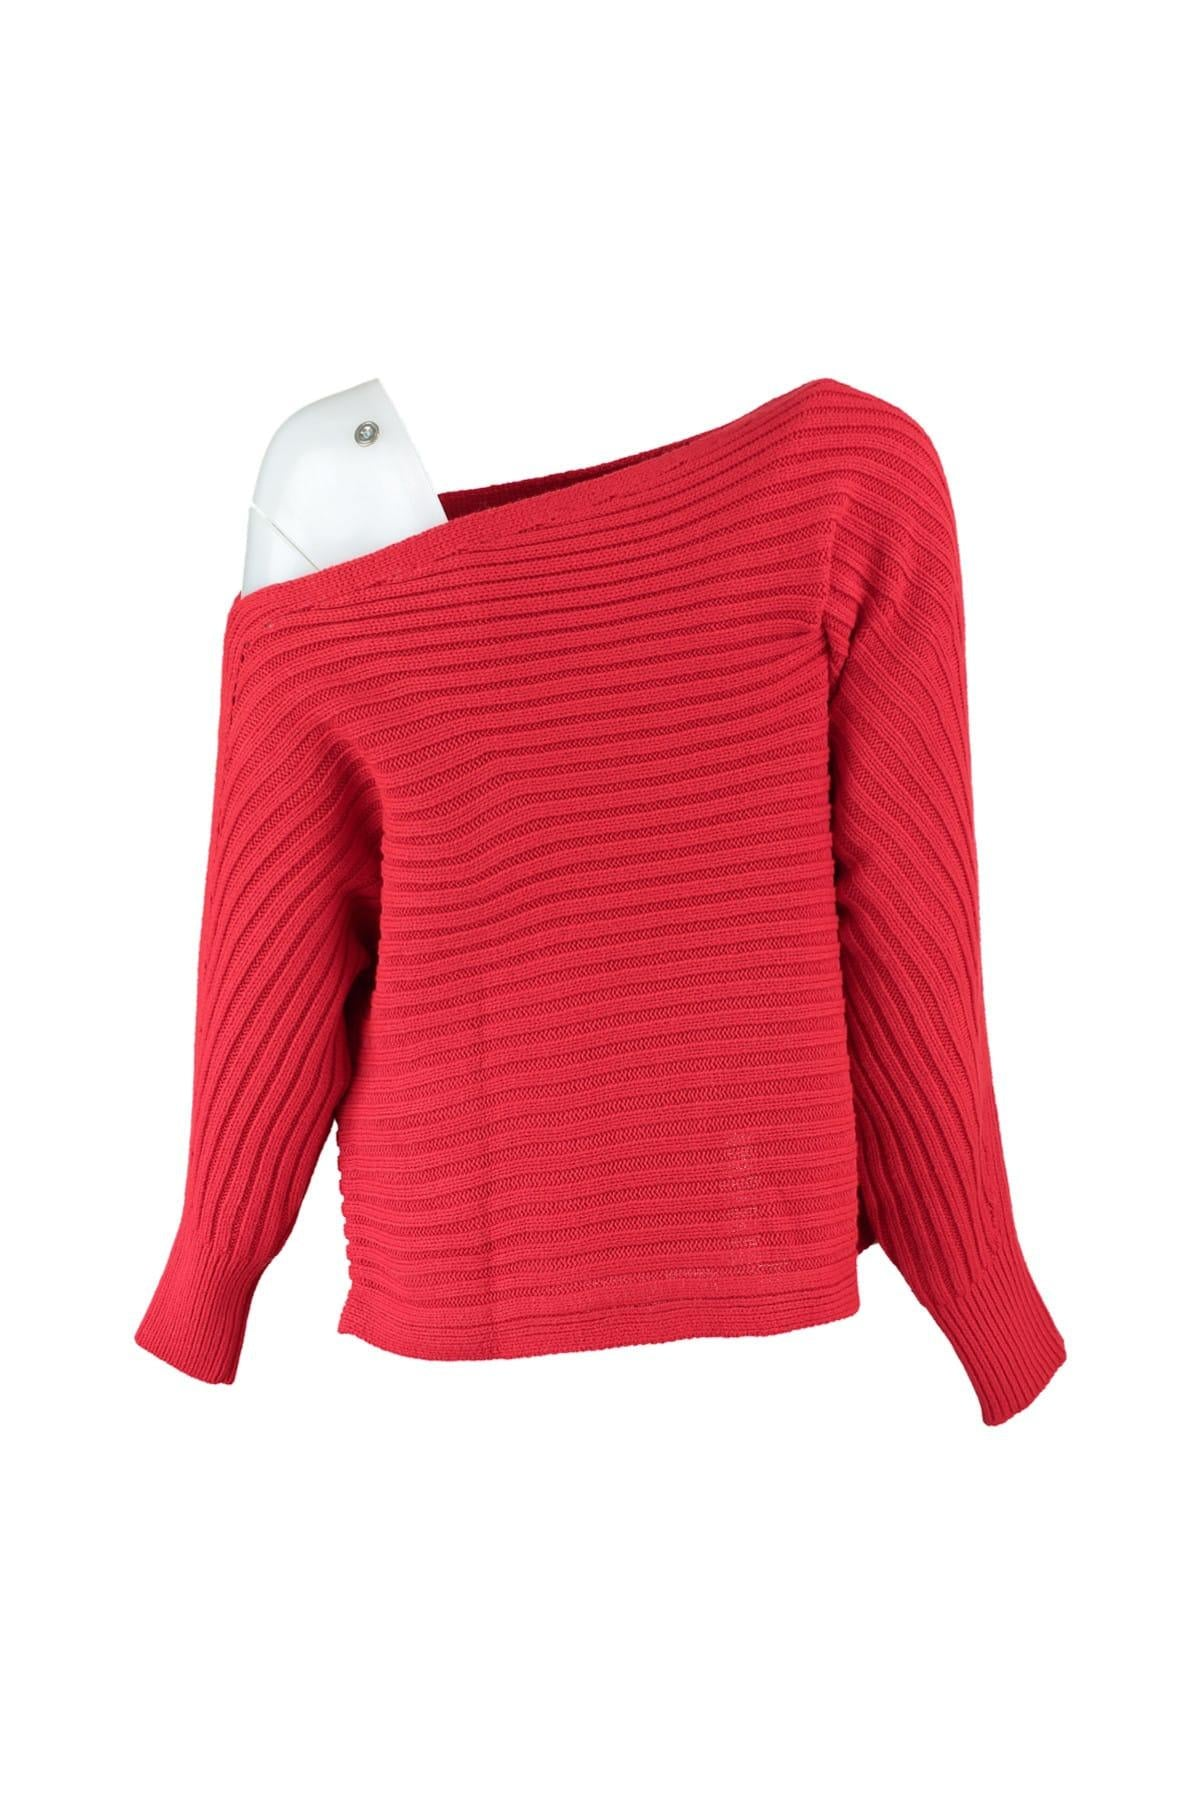 WOMEN Red One Shoulder Sweater Sweater TWOAW20FH0007